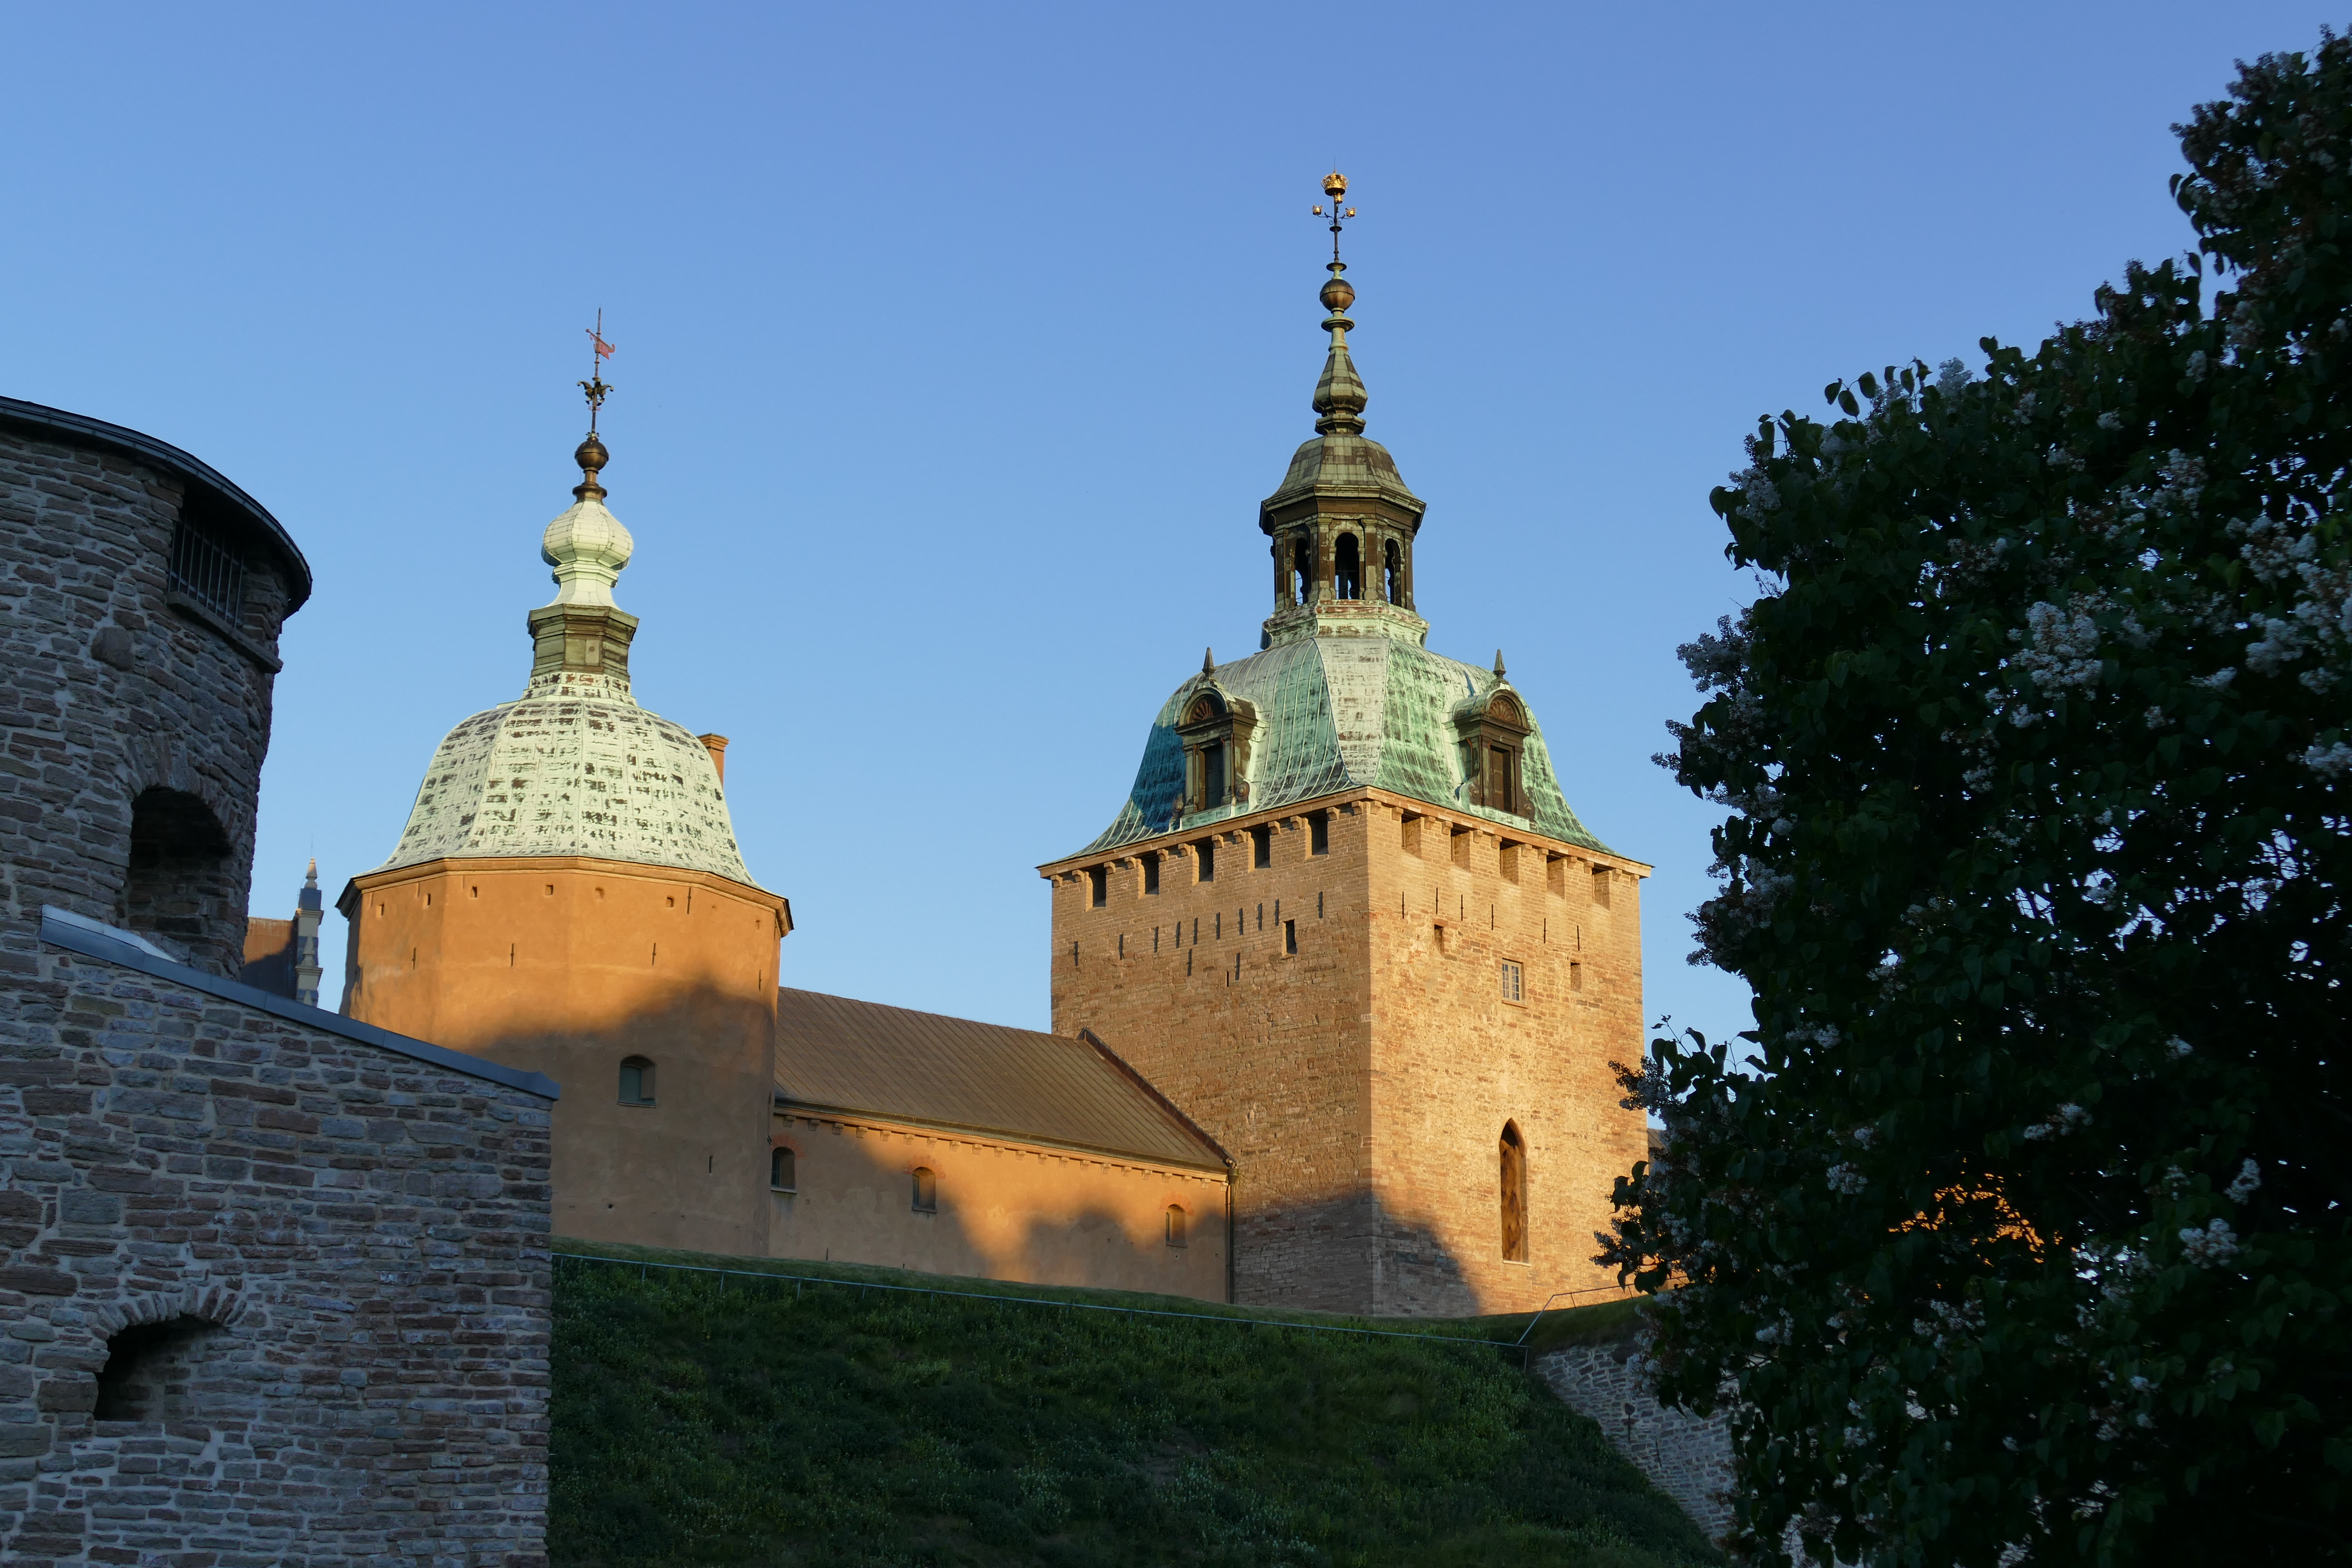 Detail of Kalmar Castle during the golden hour